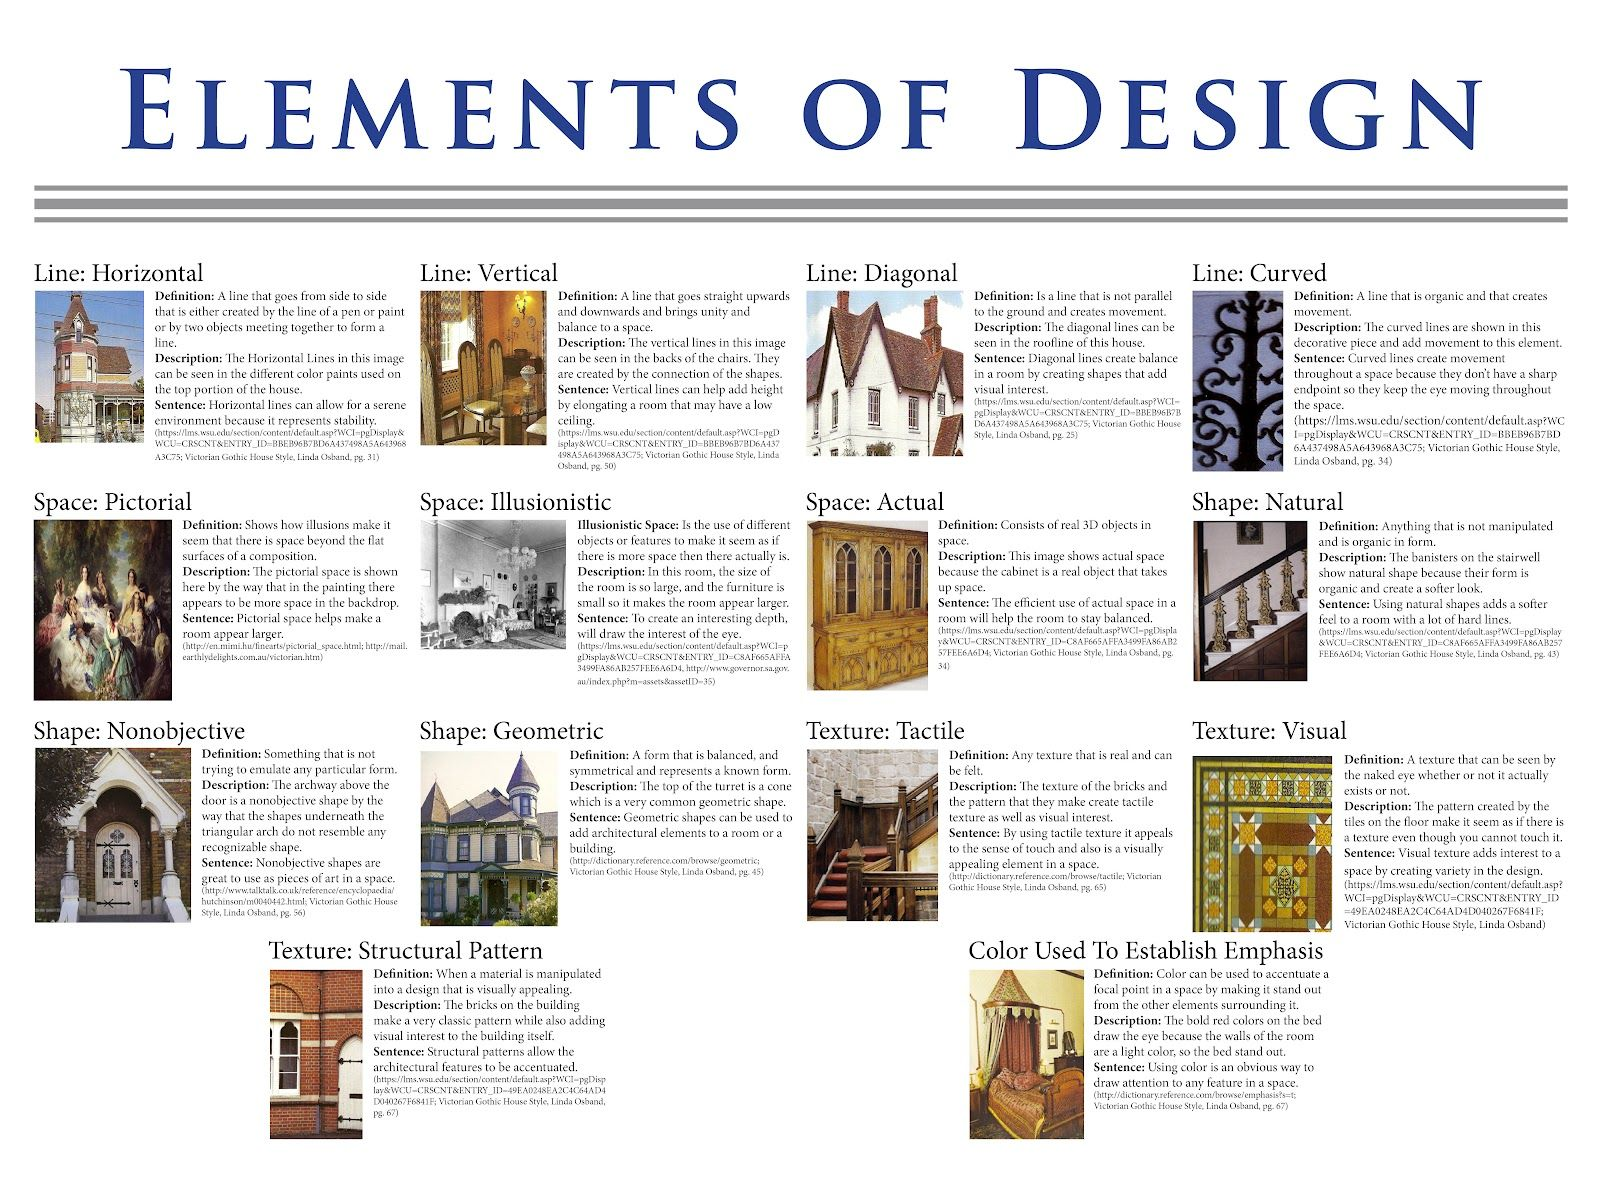 Elements And Principles Of Design In Photography : Line horizontal vertical diagonal curved space